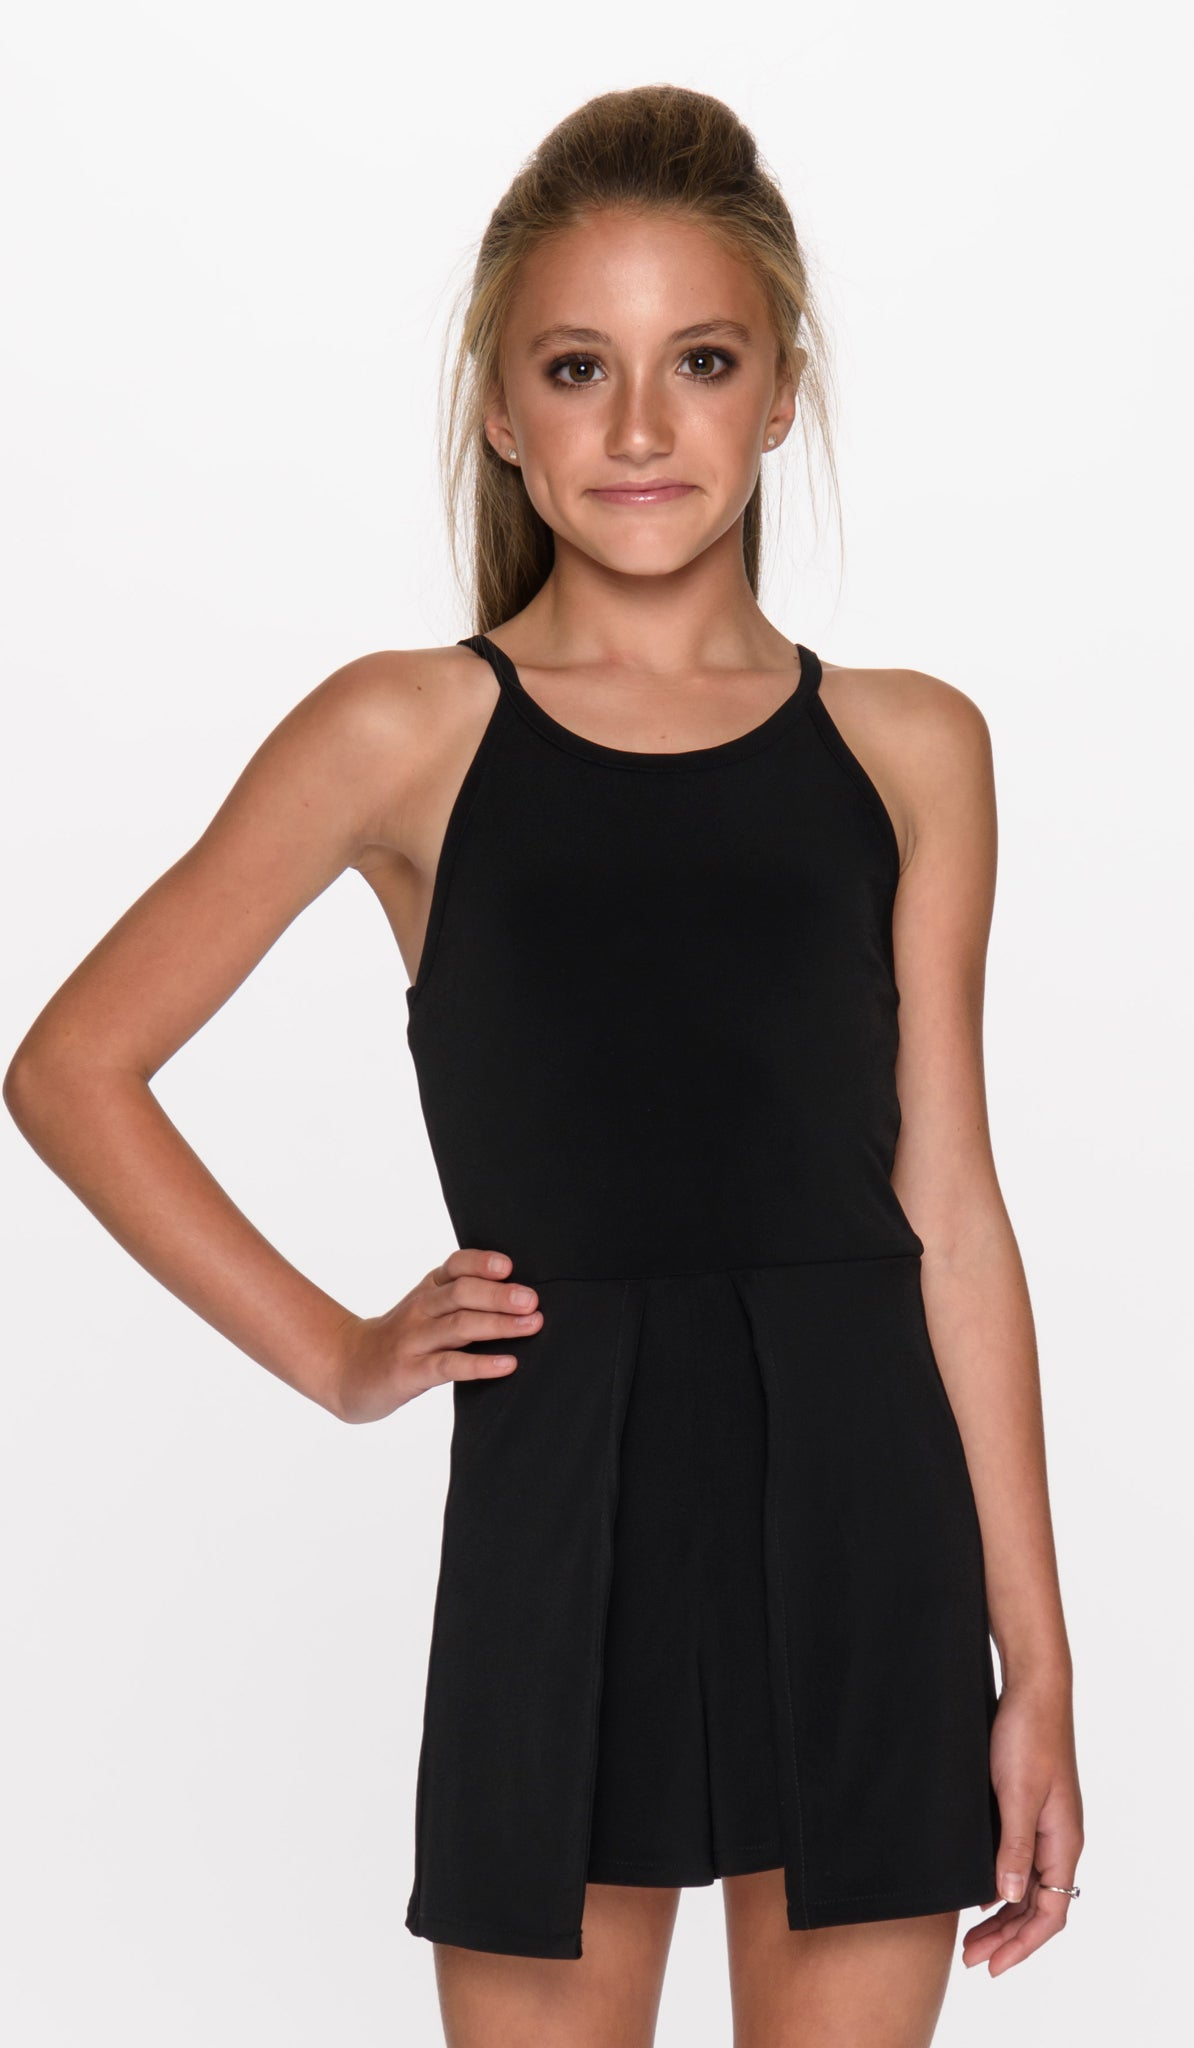 THE TYRA ROMPER - 3033 BLACK - Sallymiller.com - [variant title] - | Event & Party Dresses for Tween Girls & Juniors | Weddings Dresses, Bat Mitzvah Dresses, Sweet Sixteen Dresses, Graduation Dresses, Birthday Party Dresses, Bar Mitzvah Dresses, Cotillion Dresses